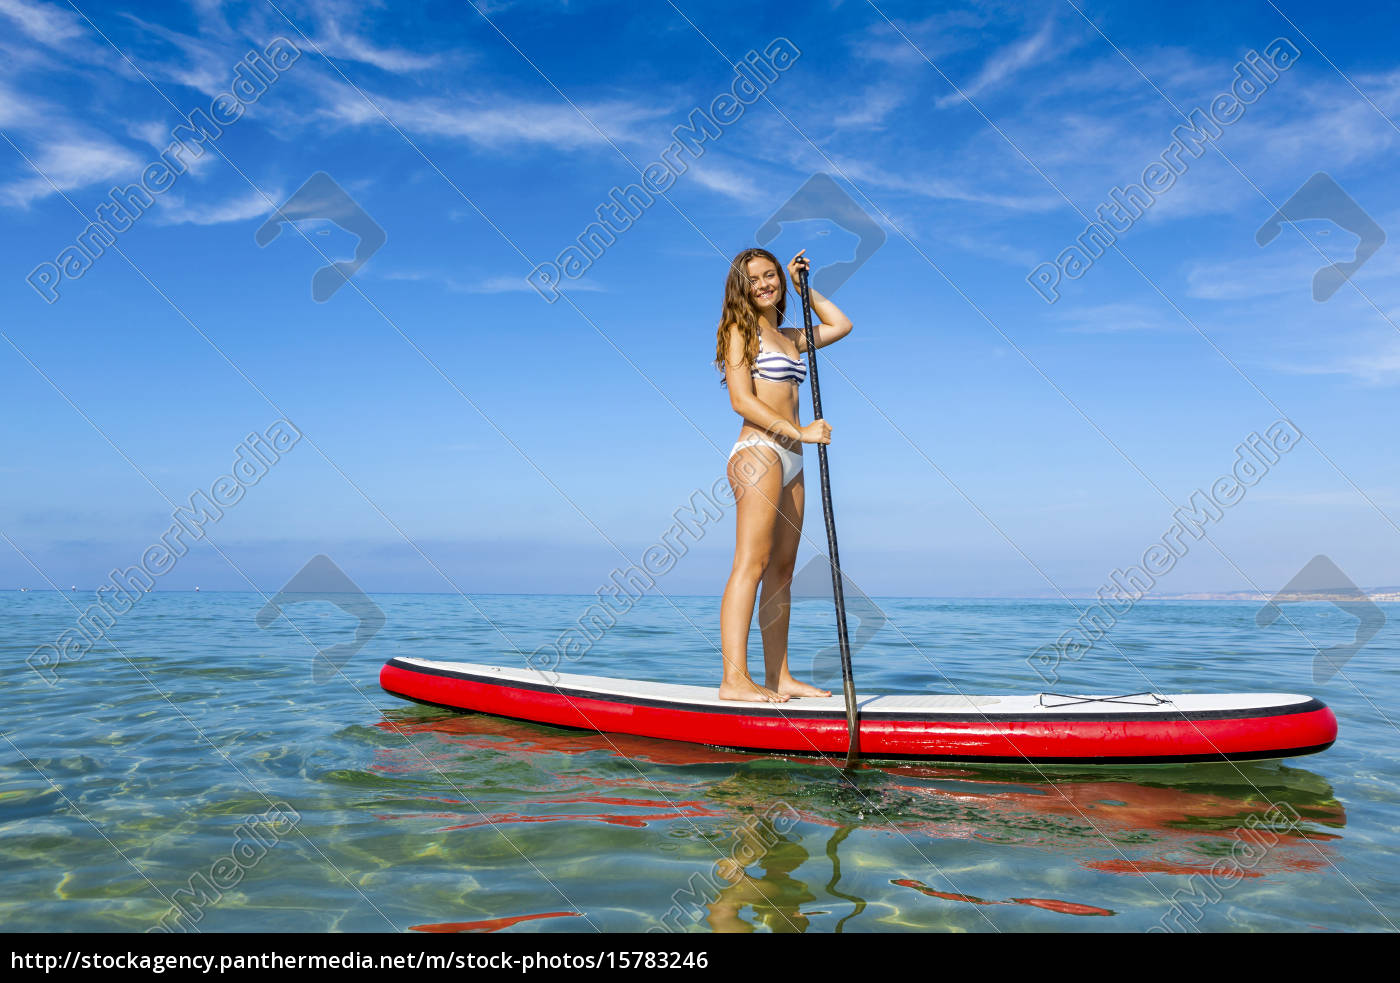 woman, practicing, paddle - 15783246